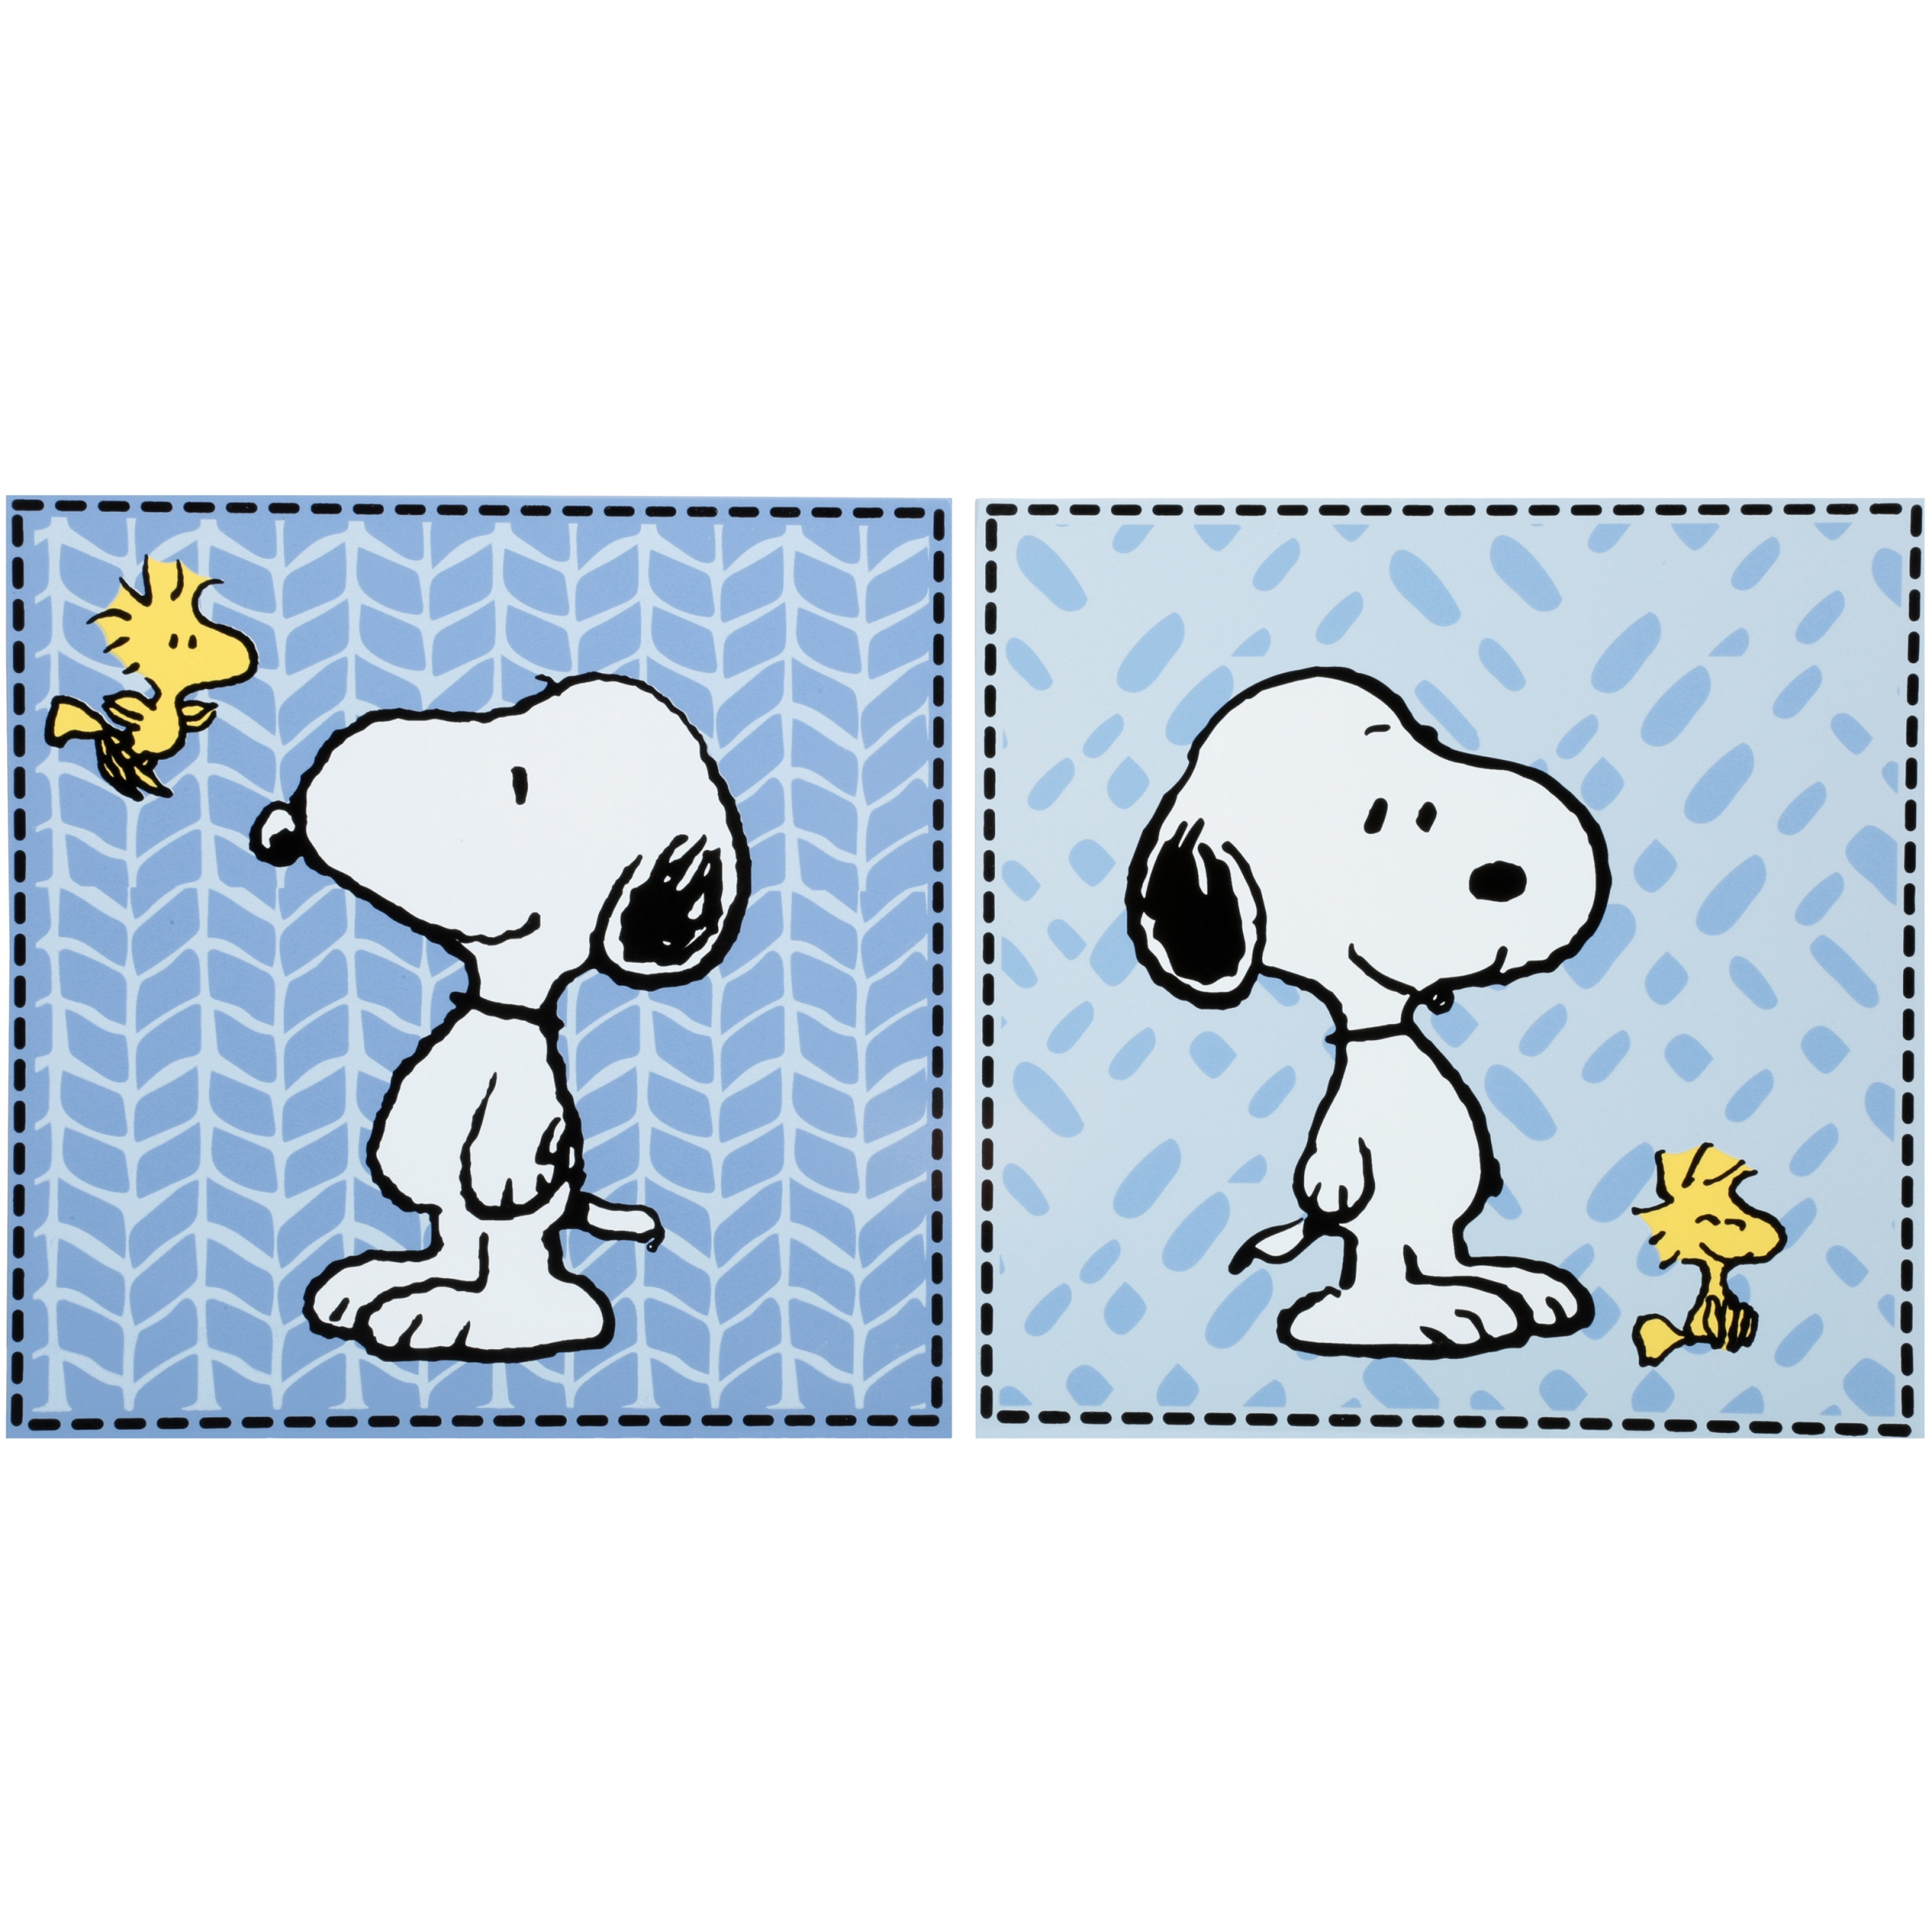 Lambs & Ivy Bedtime Originals™ Peanuts Forever Snoopy Wall Decor 2 pc Box